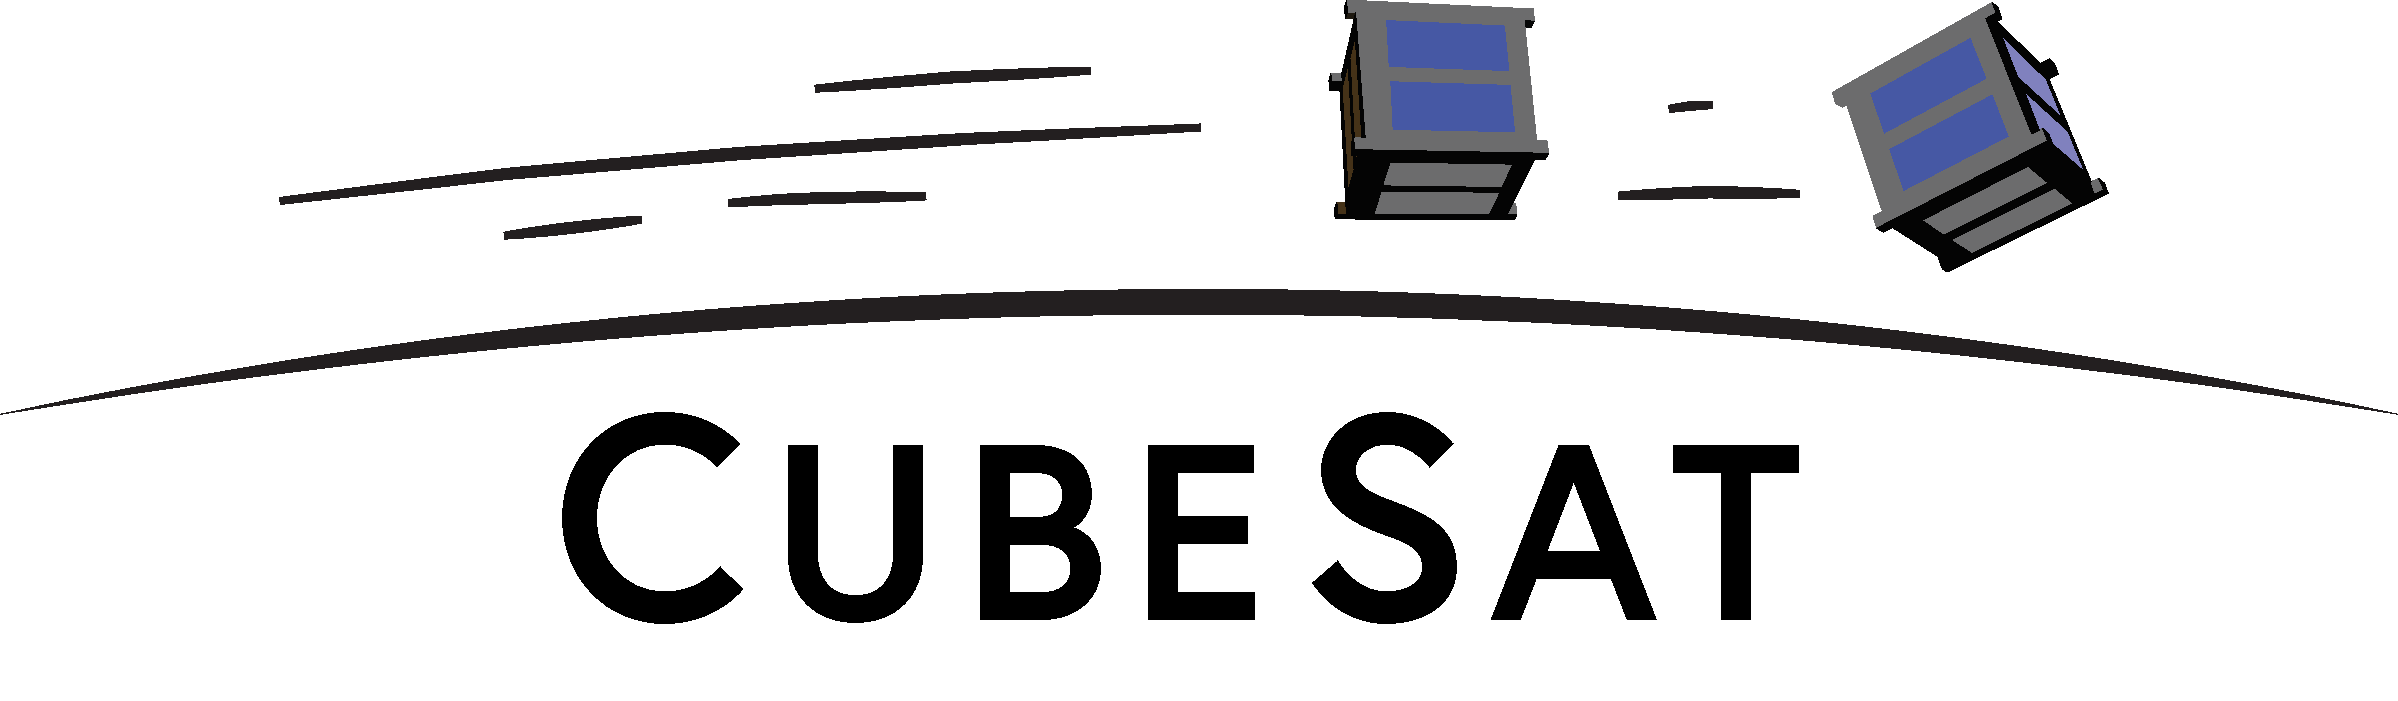 CubeSat_Logo-updated18.png